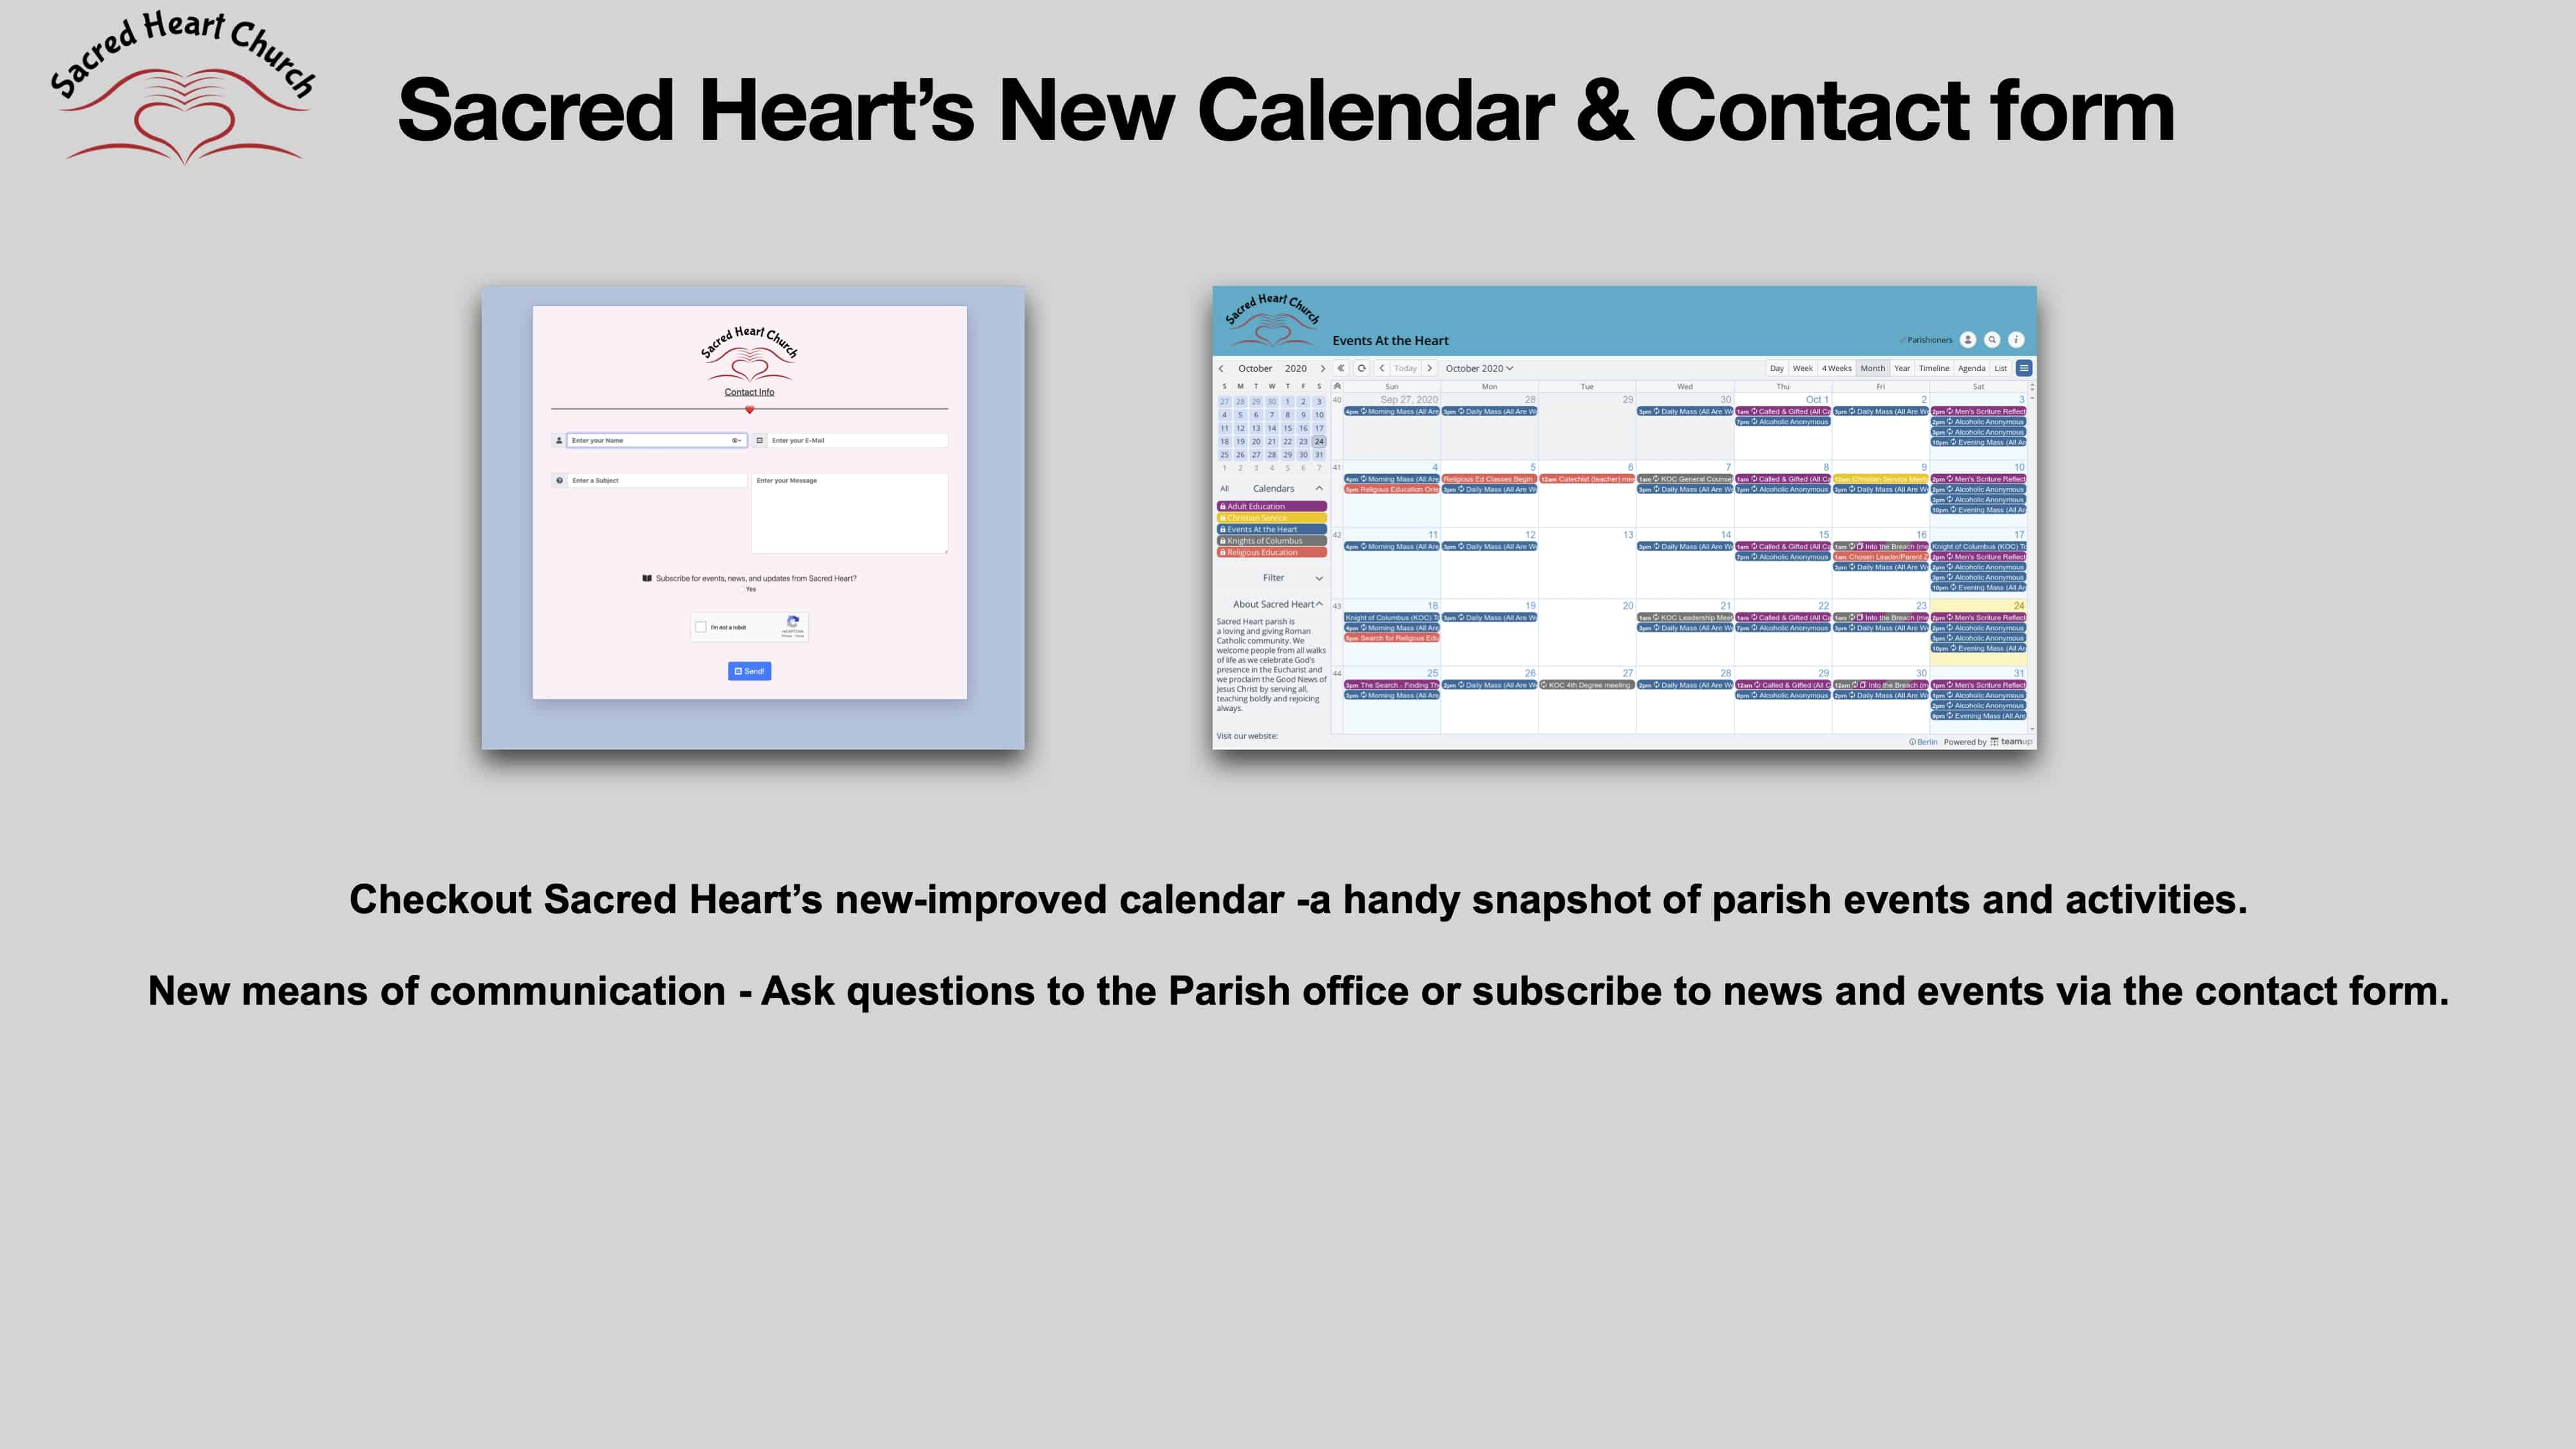 Sacred Heart's new online calendar and contact form